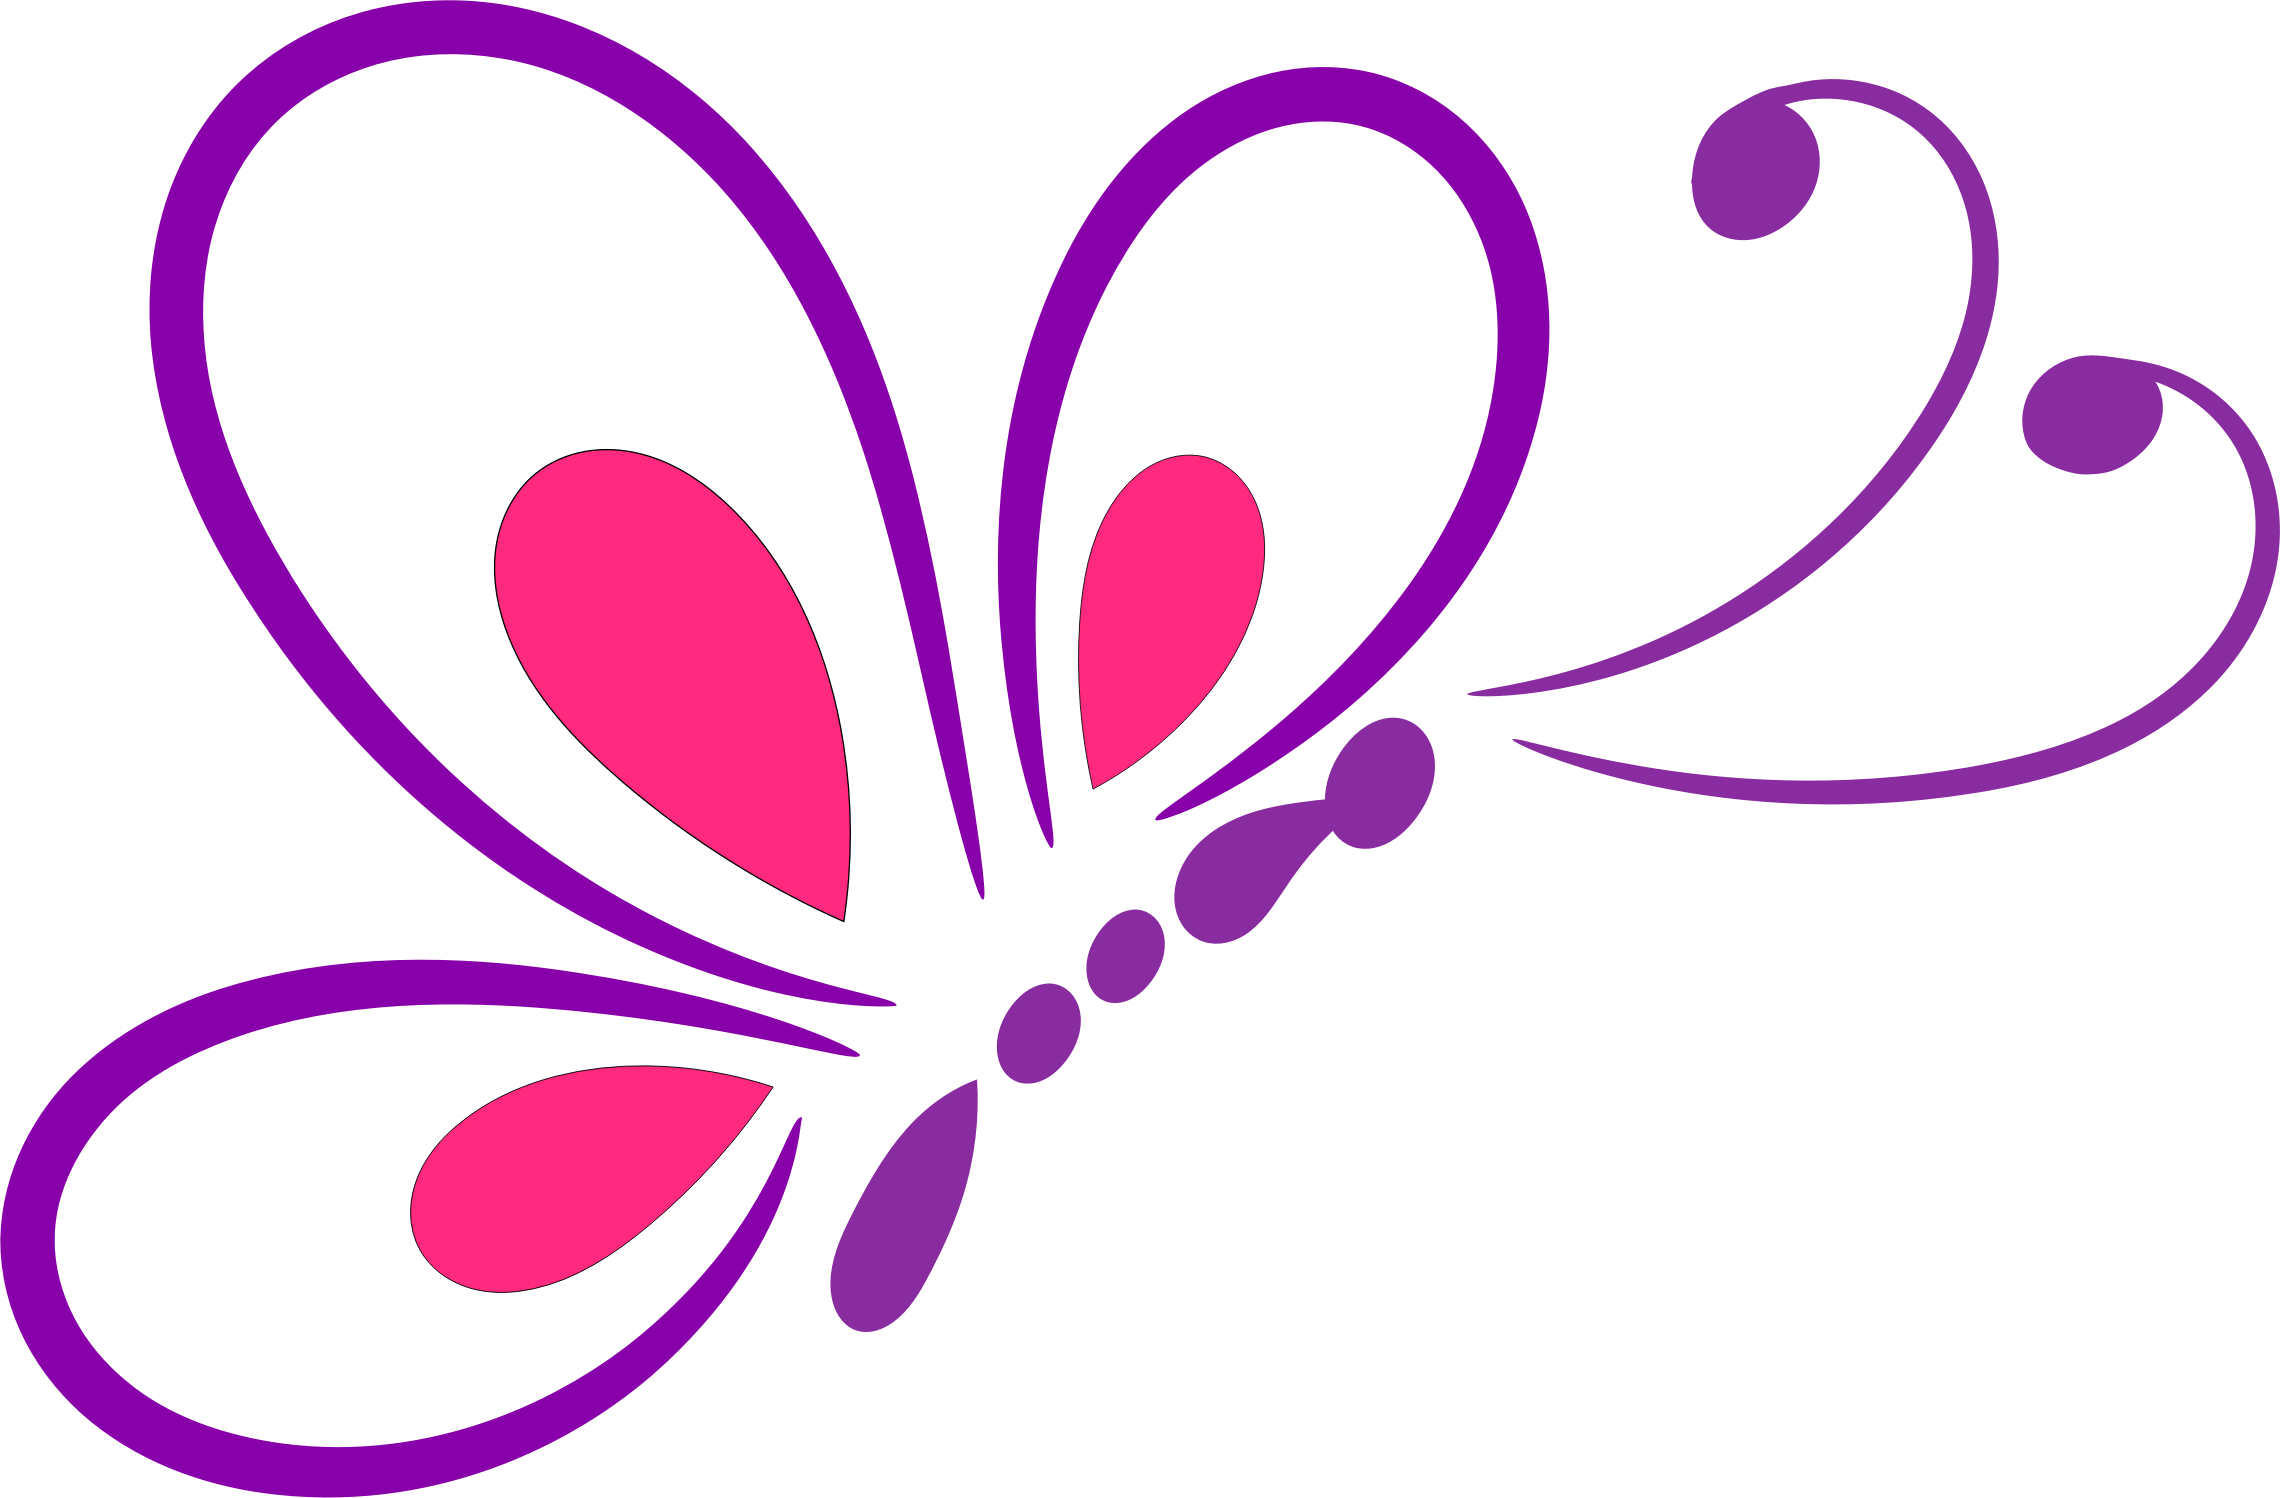 Logo clipart butterfly, Logo butterfly Transparent FREE for.